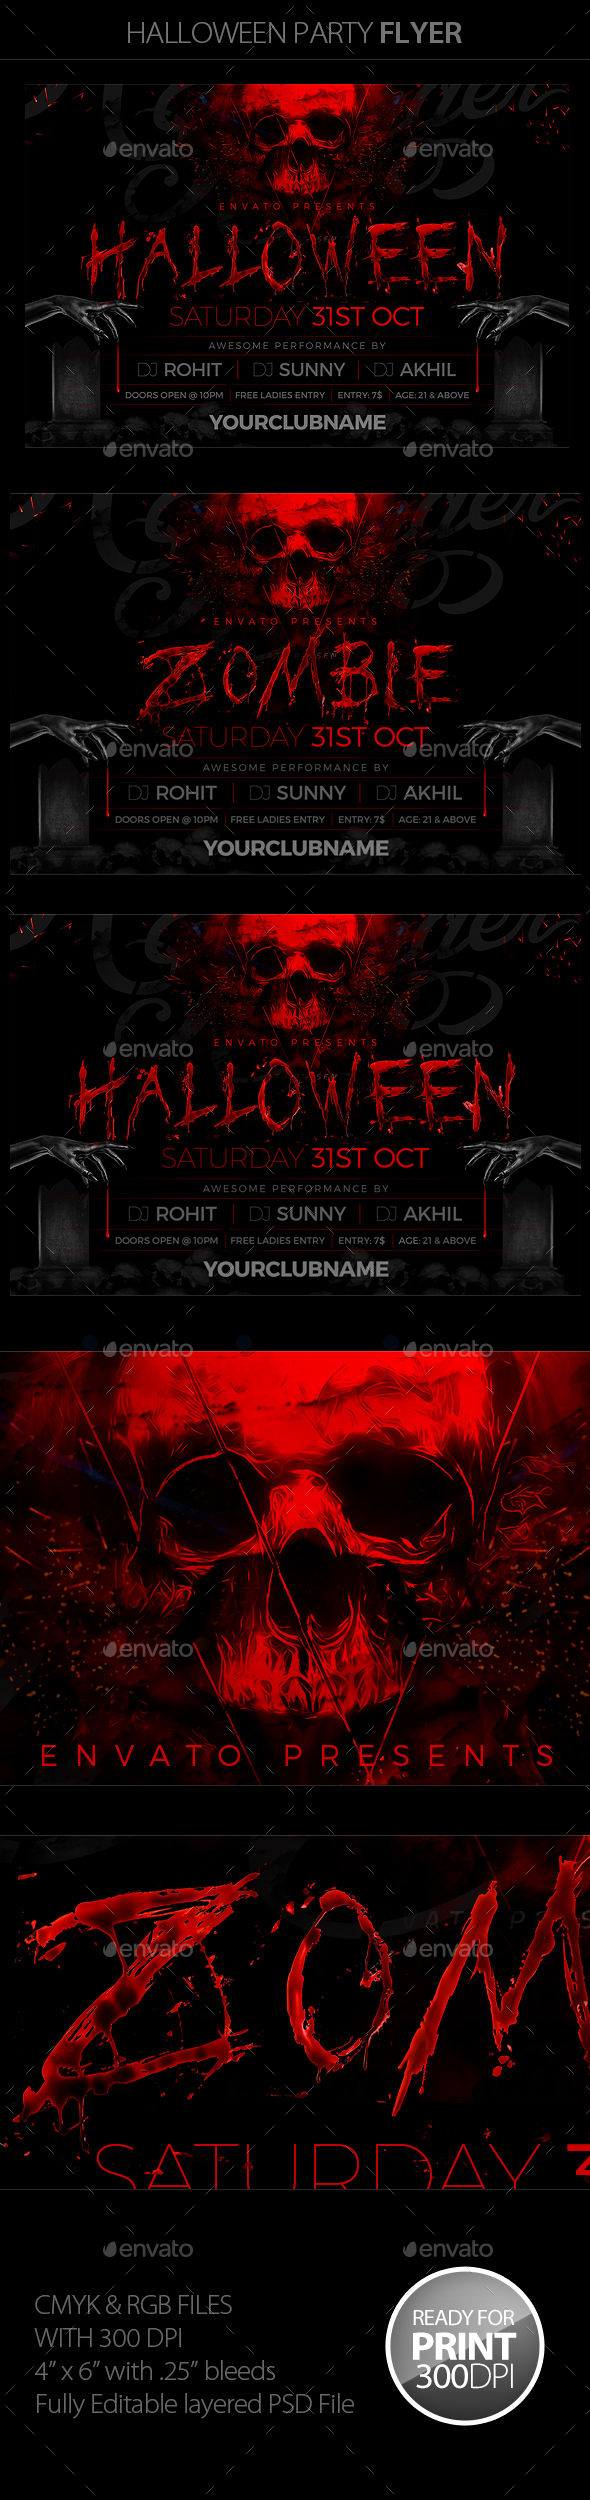 Halloween Party by Mantushetty (Halloween party flyer)